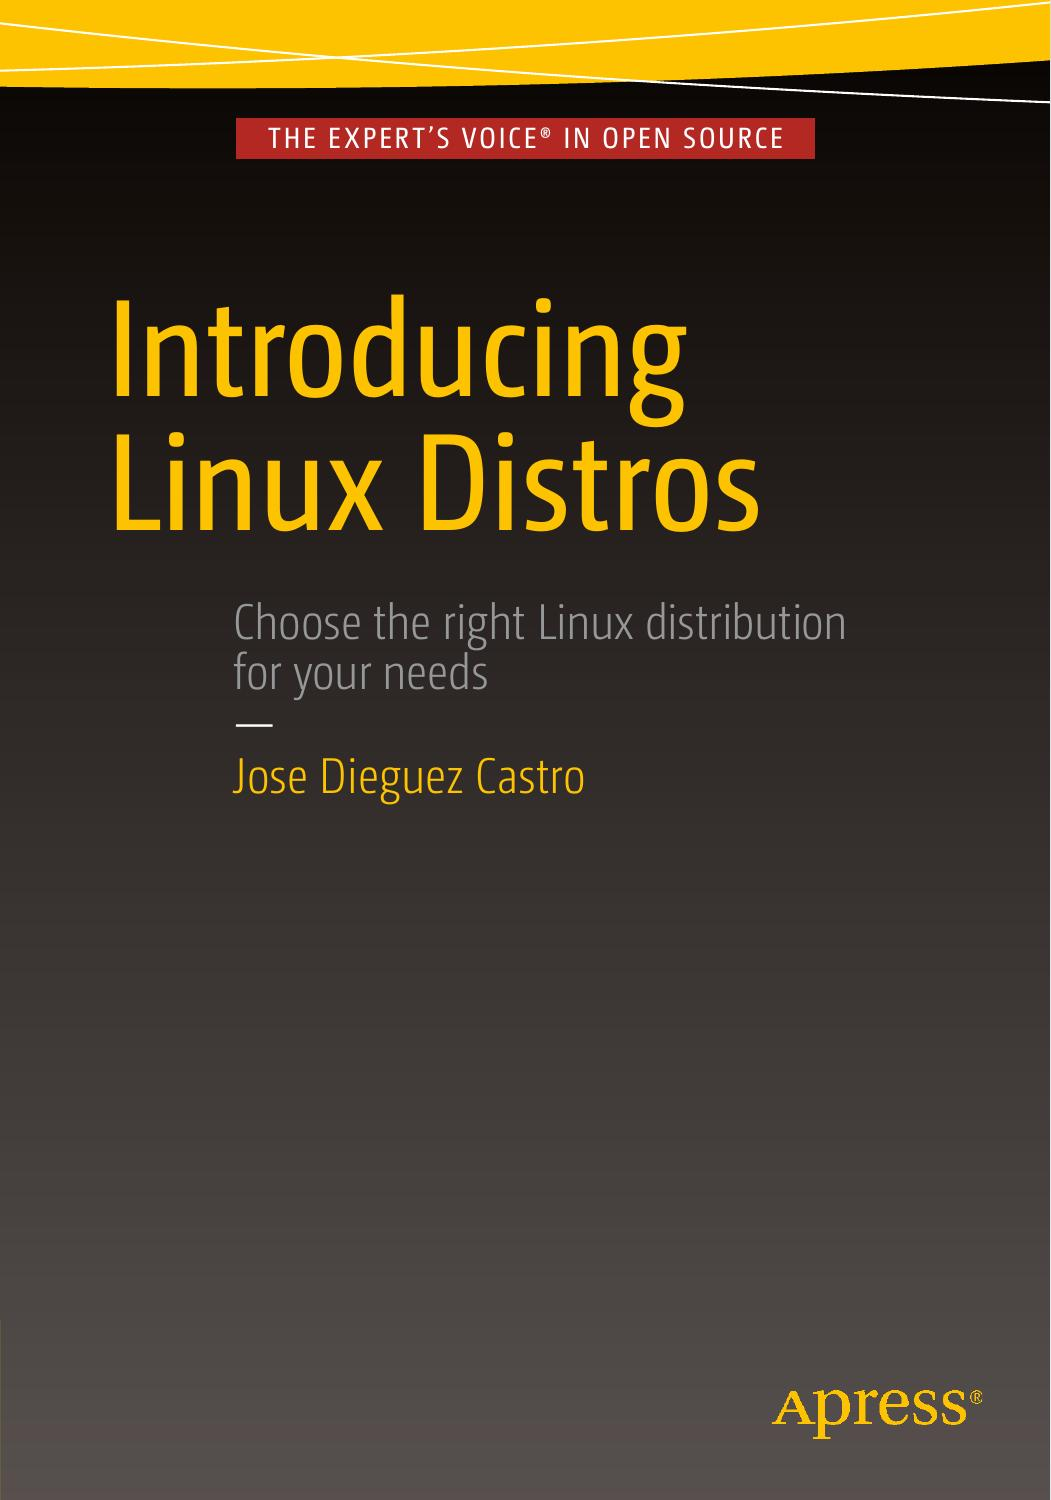 Introducing Linux Distros